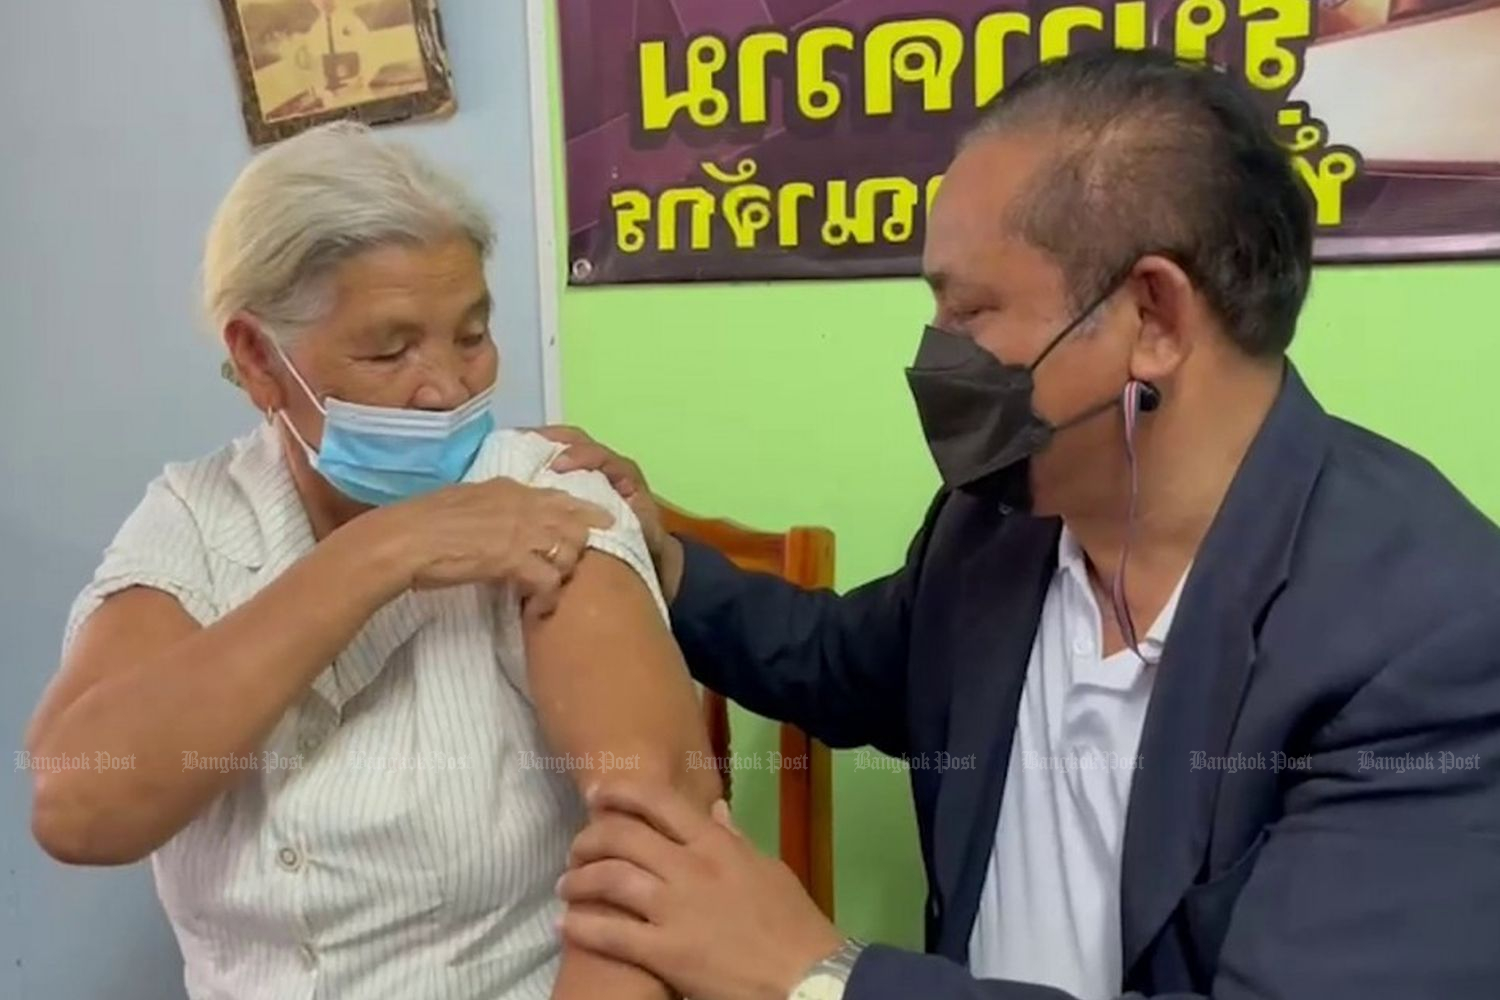 Somwang Jukul (left) shows an arm in a video with her son, while talking to Thai media about how she got two shots of the AstraZeneca vaccine on Saturday.